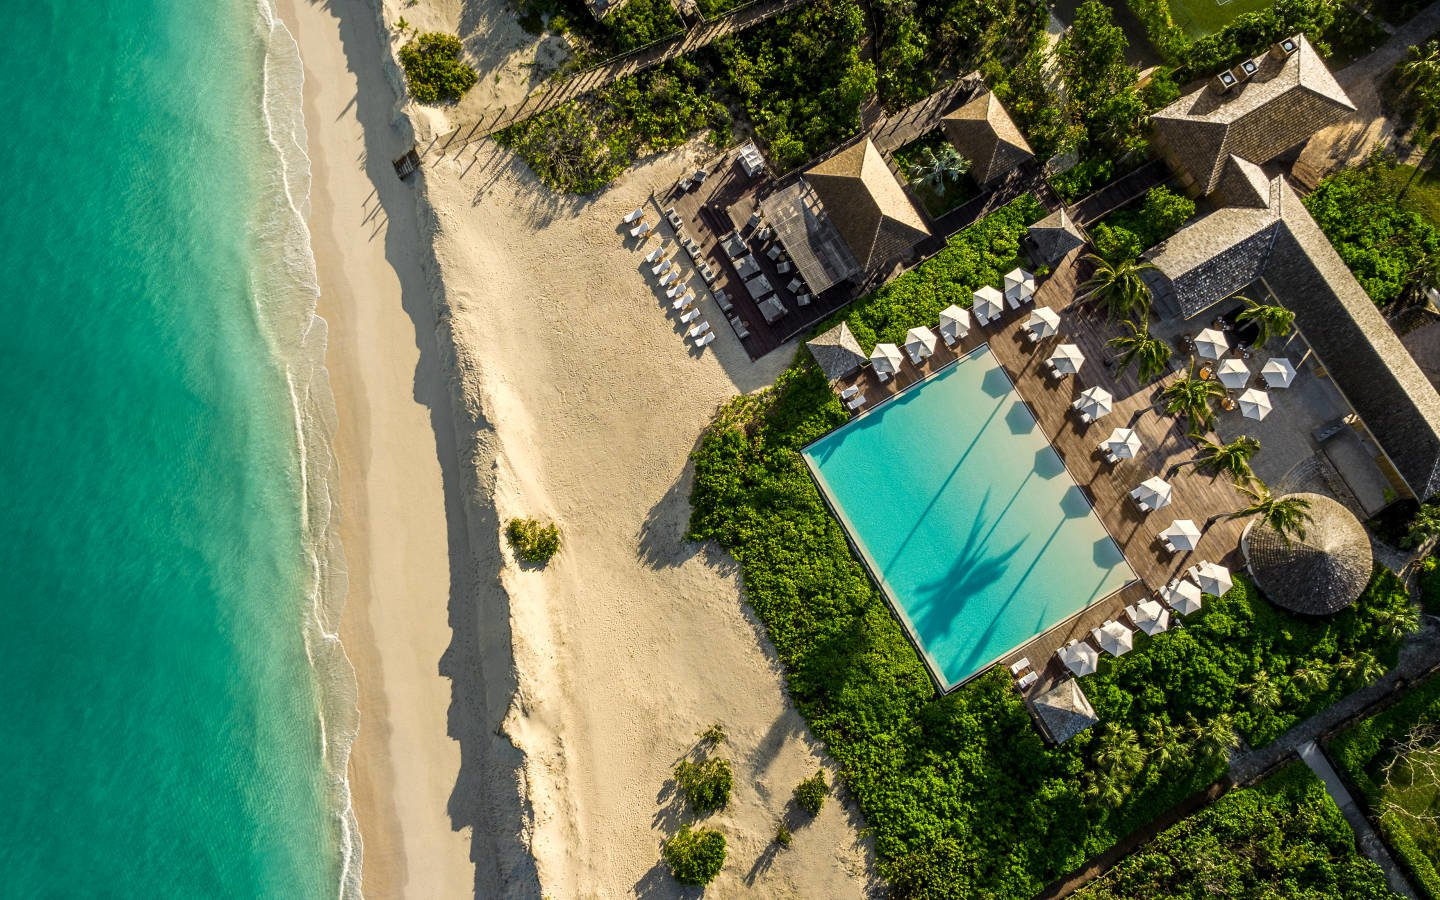 aerial view of Turks and Caicos Retreat with swimming pool